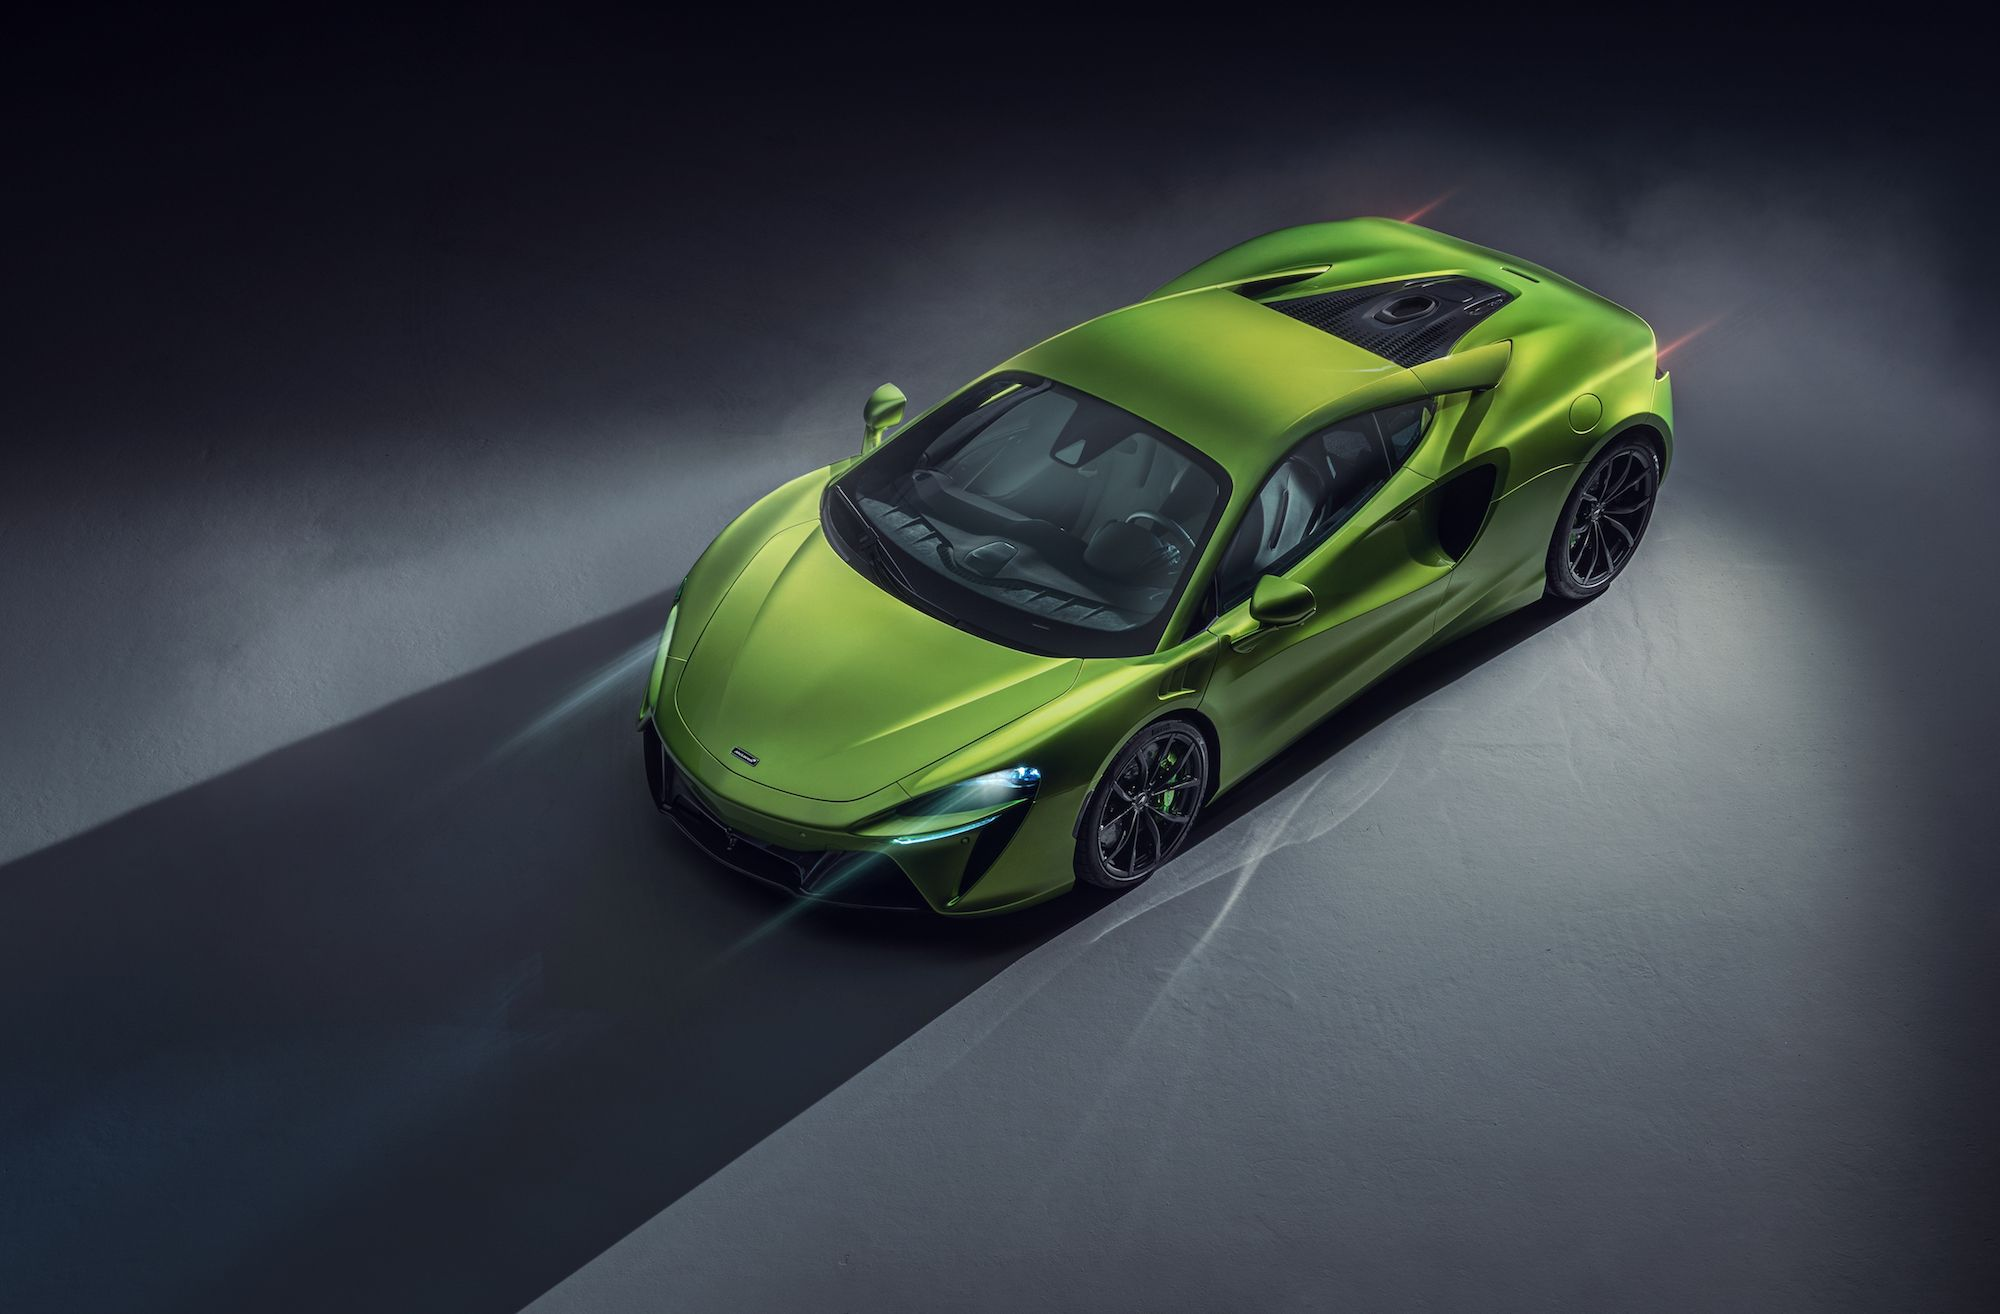 The 2022 McLaren Artura Is the Lightweight Hybrid Supercar of the Future